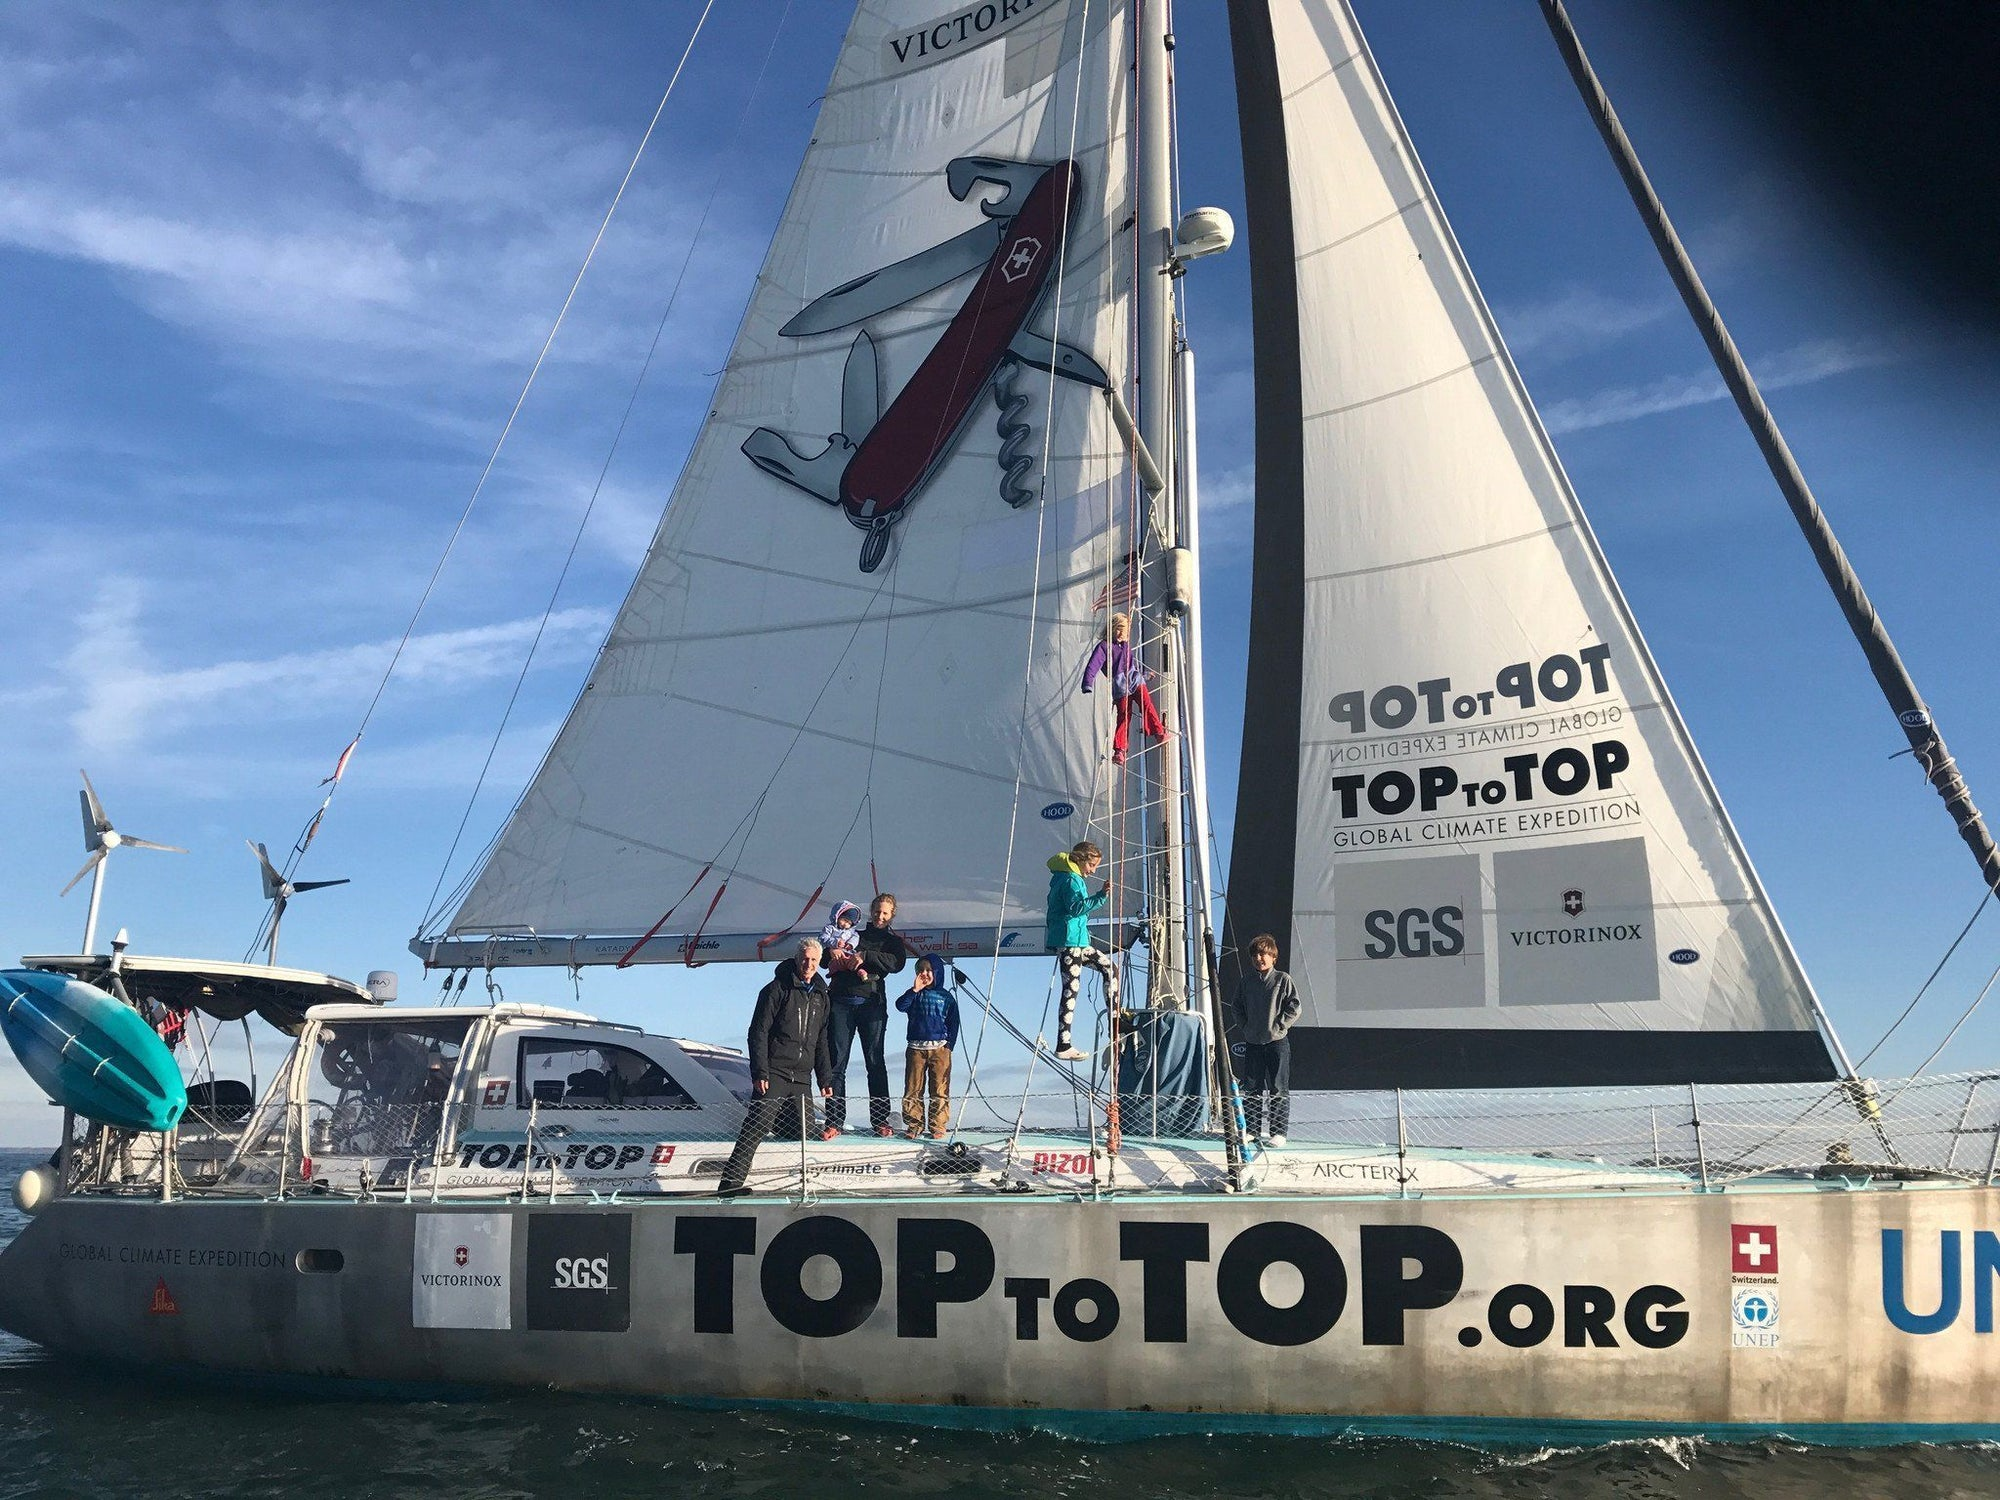 TOPtoTOP boat arrives in Mystic